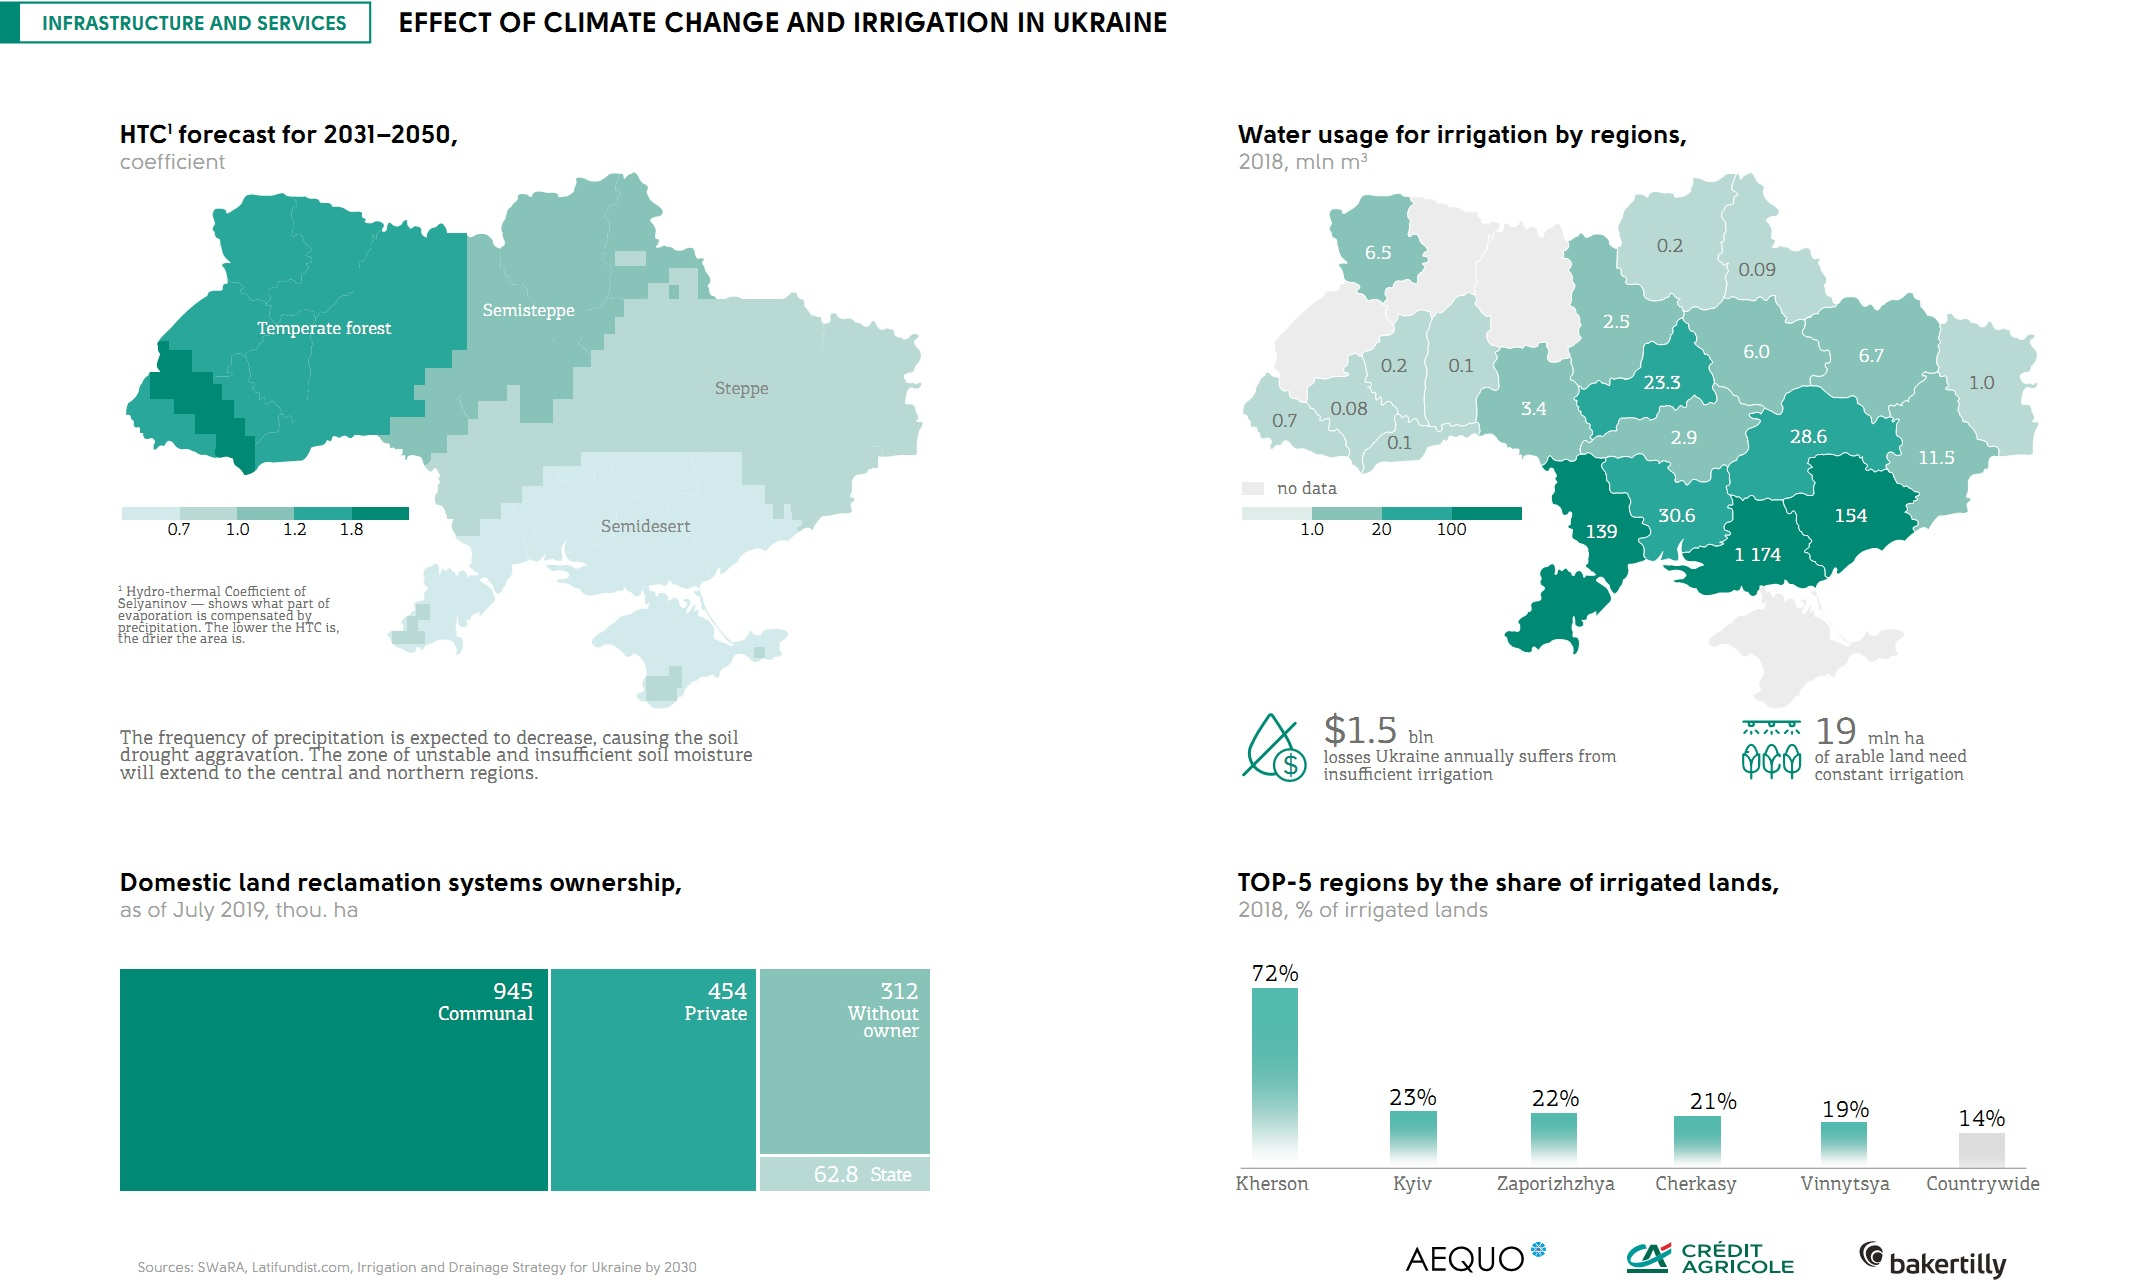 Climate change and irrigation in Ukraine (click for full resolution)